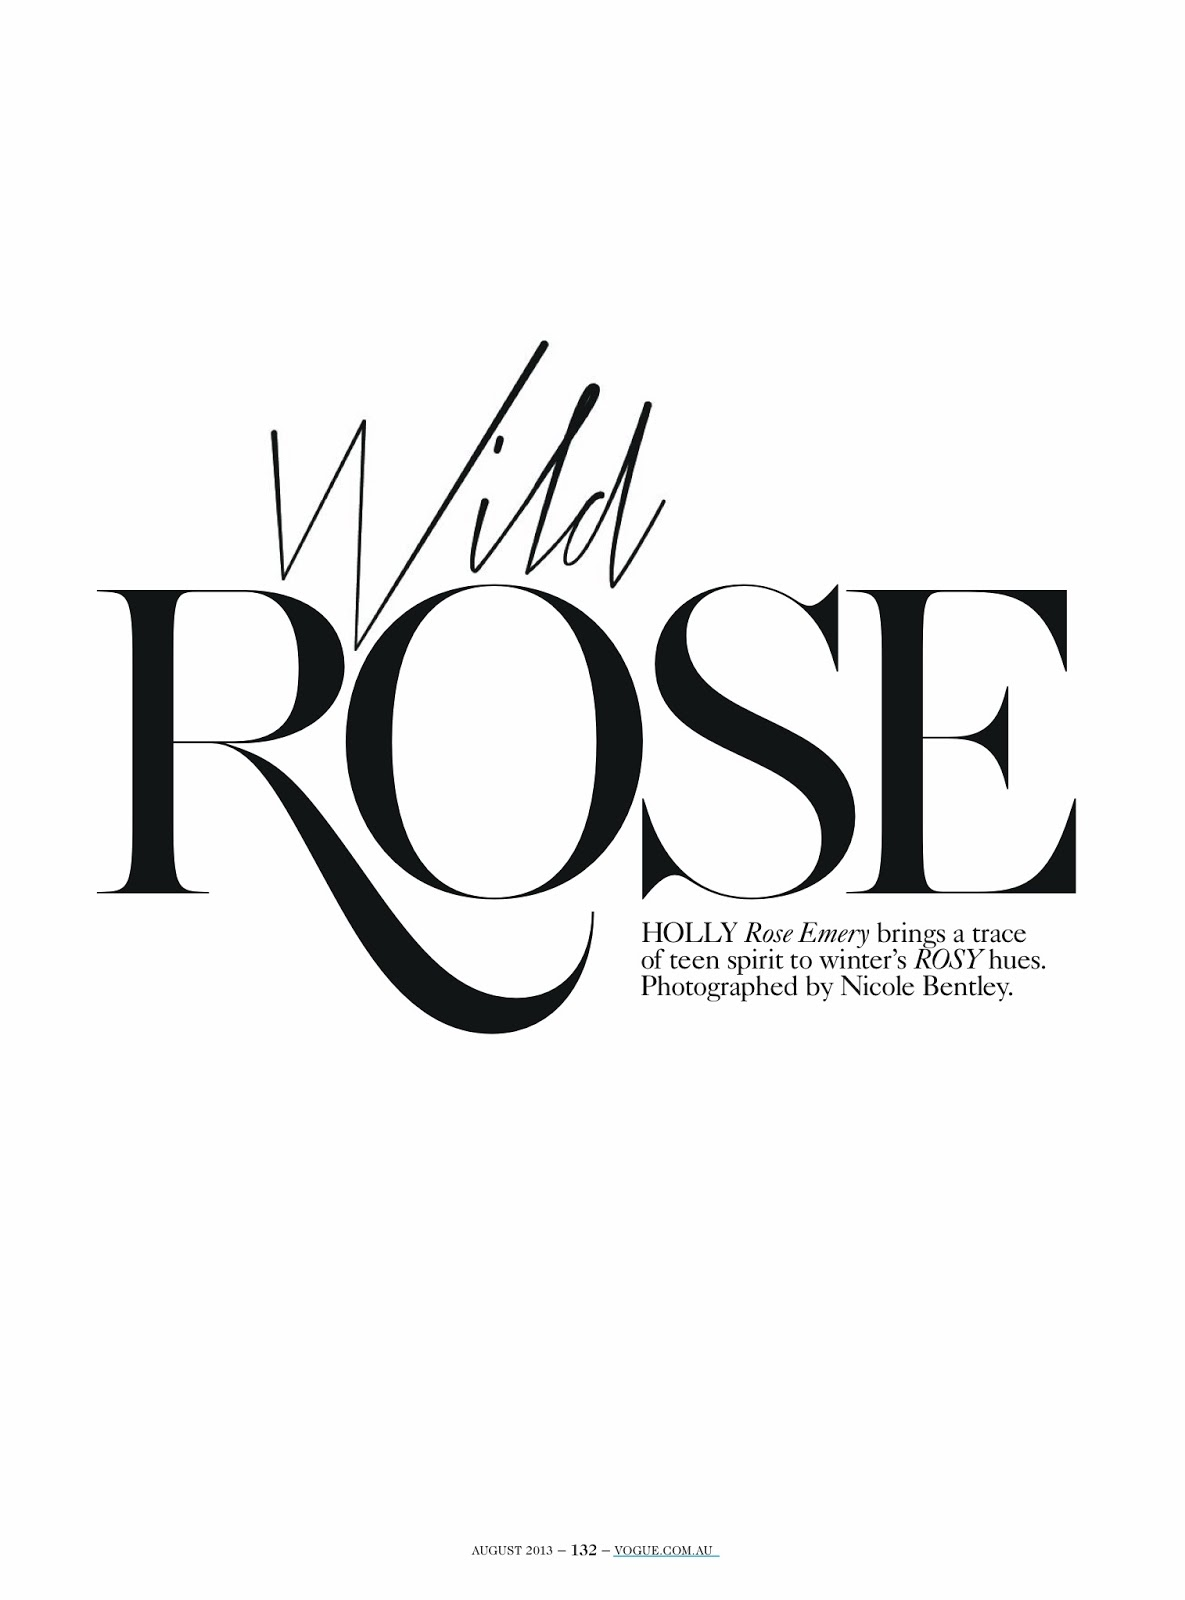 wild rose: holly rose by nicole bentley for vogue